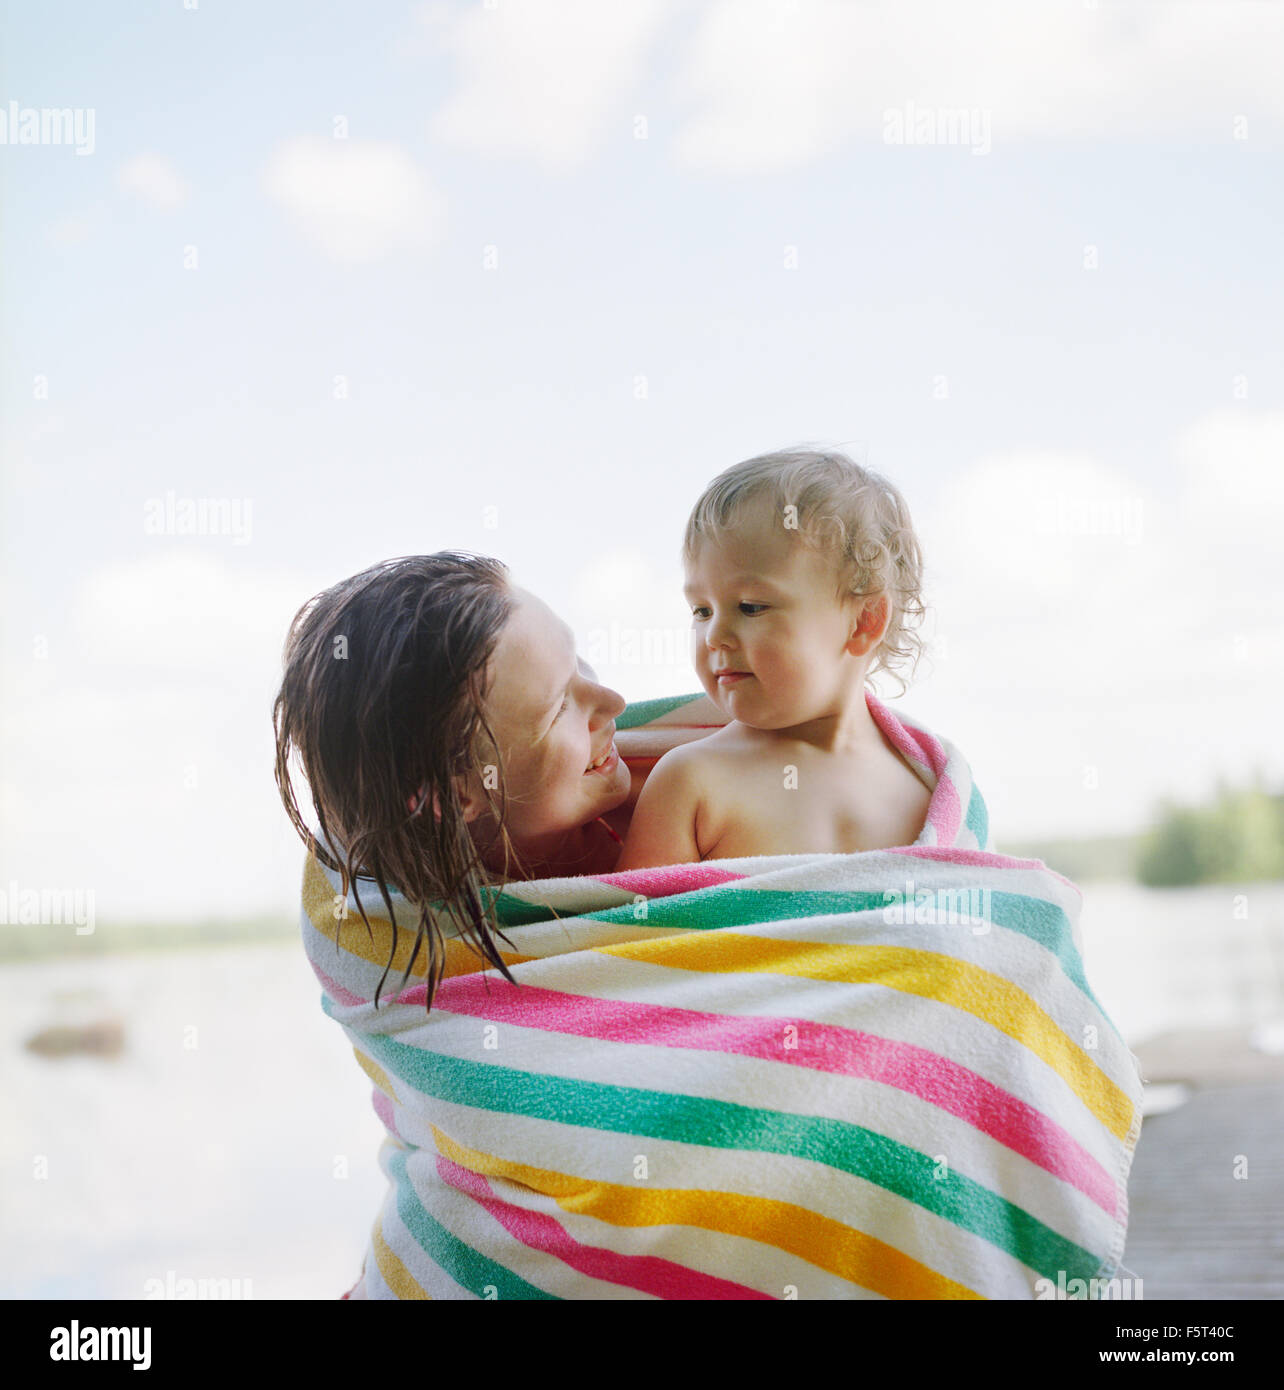 Finland, Uusimaa, Lapinjarvi, Mother and daughter (2-3) wrapped in towel - Stock Image